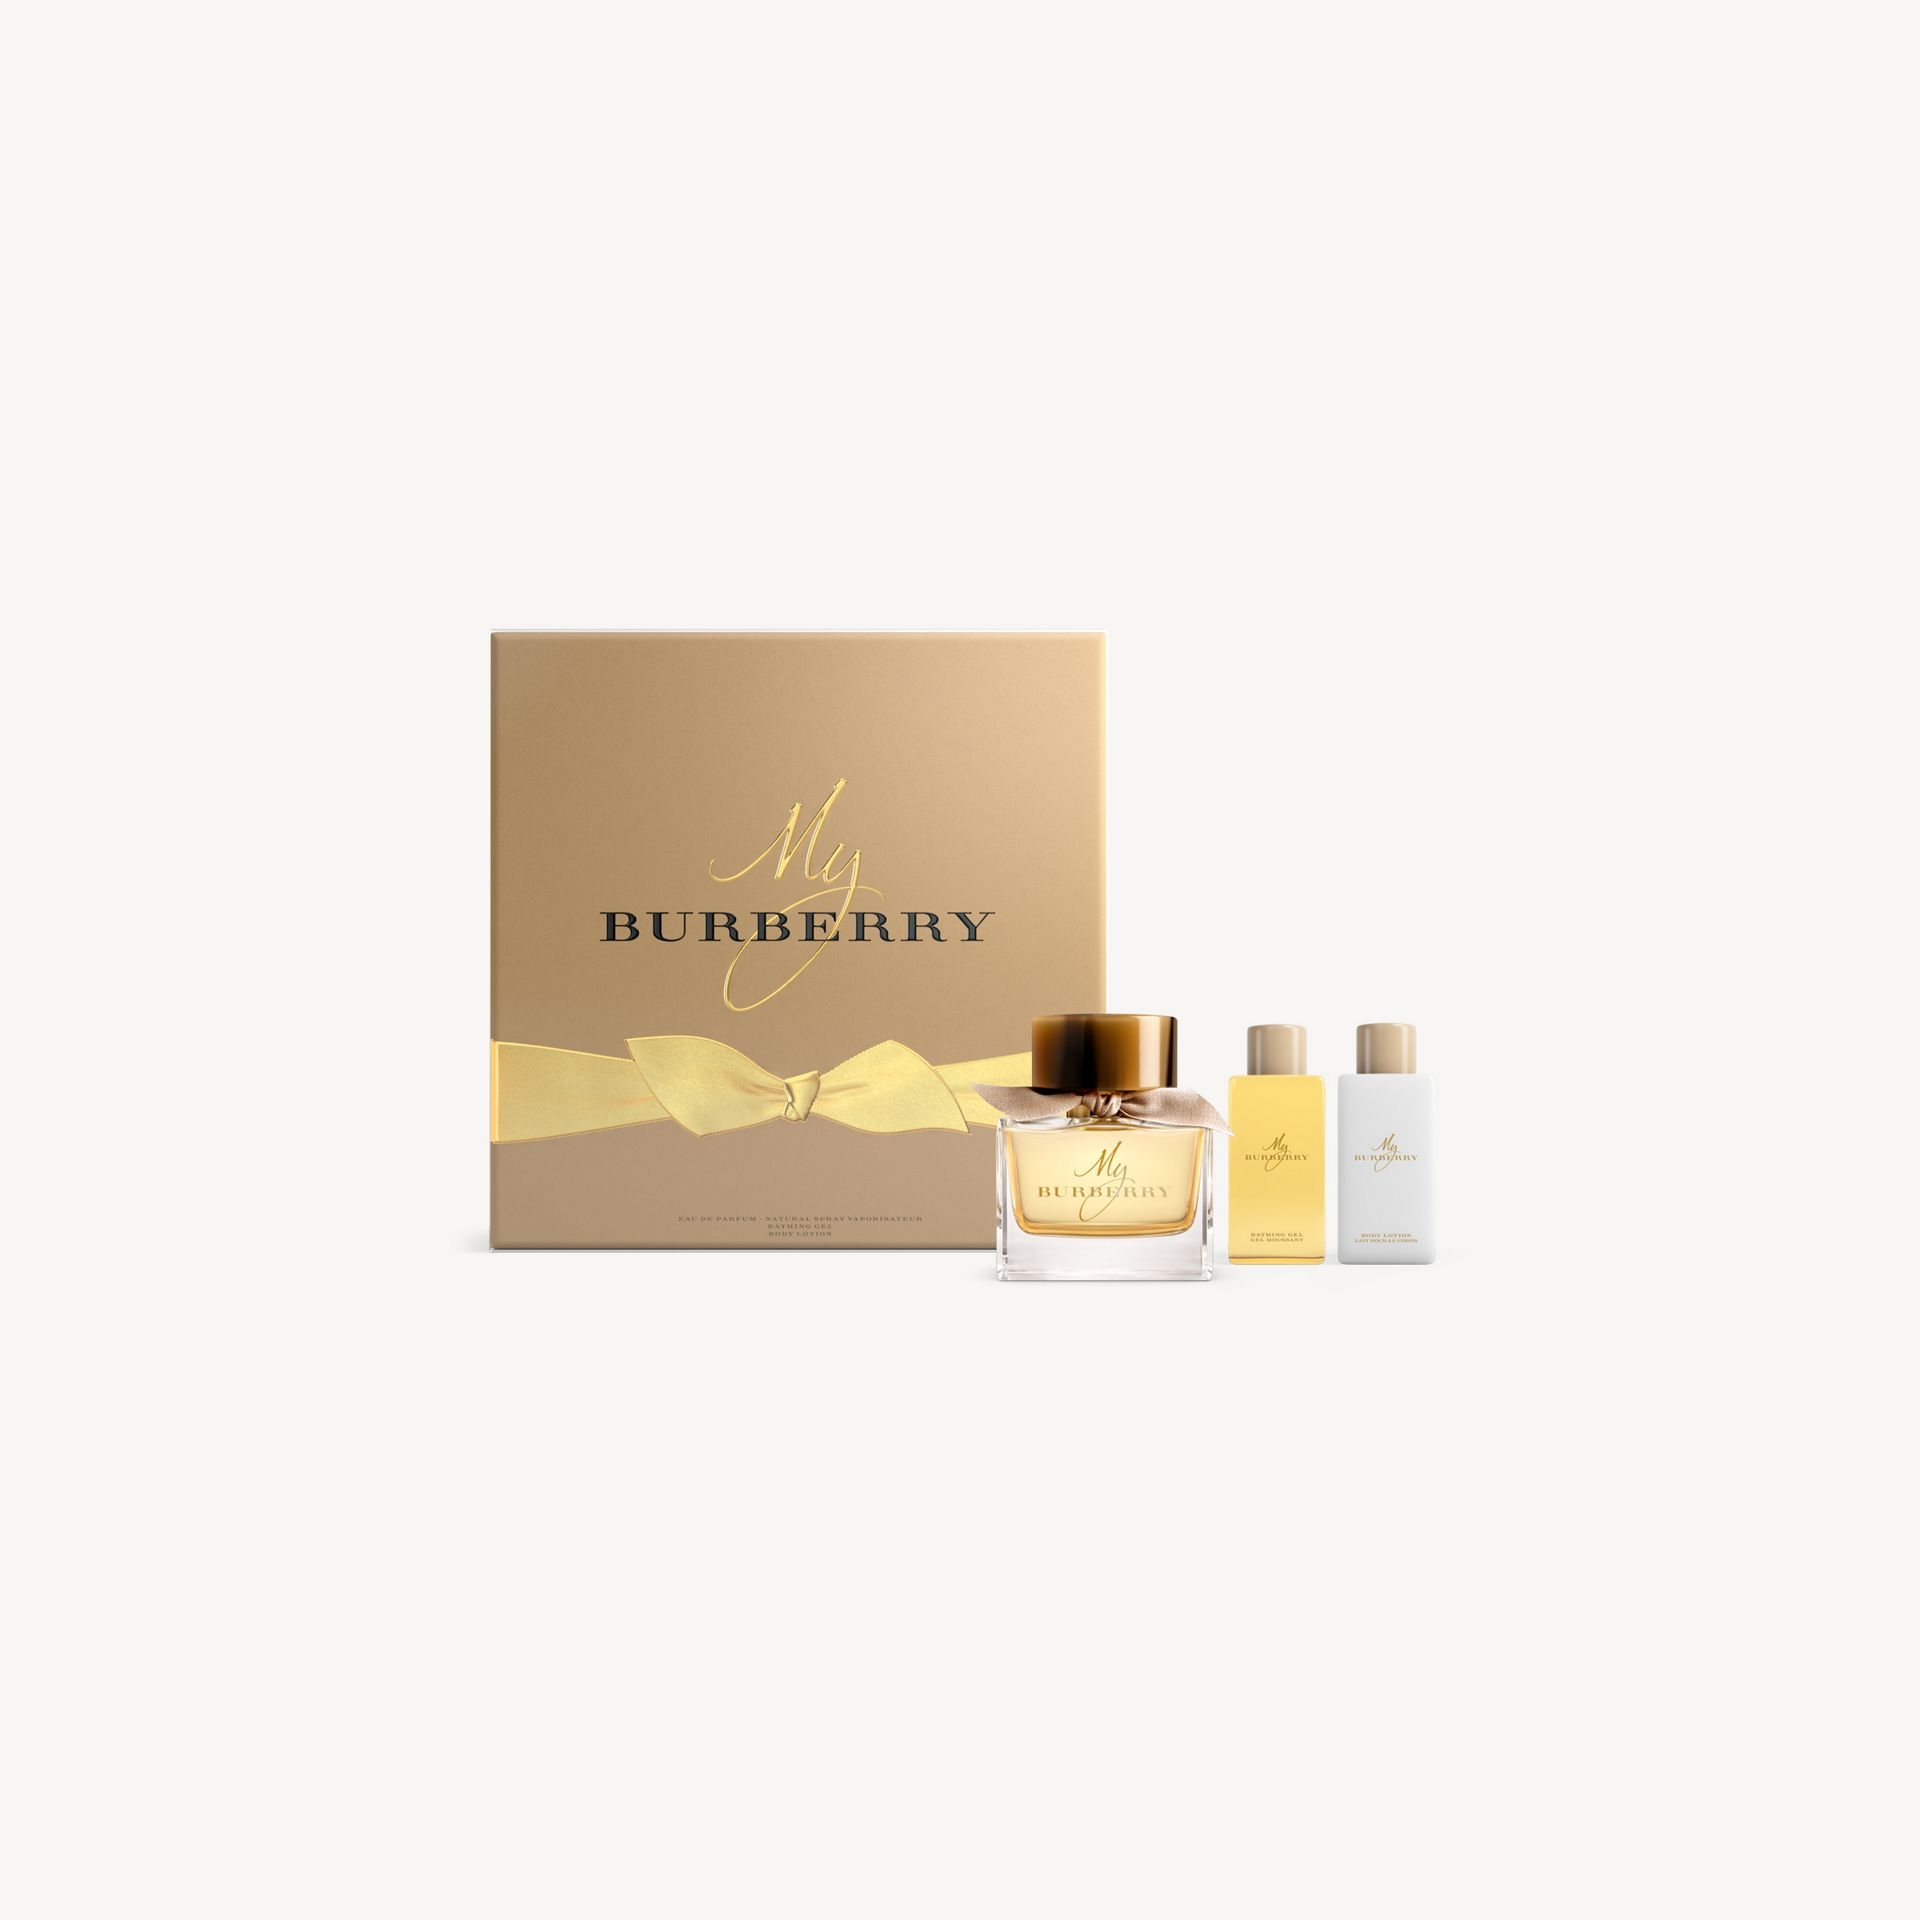 My Burberry Eau de Parfum Luxury Set - gallery image 1